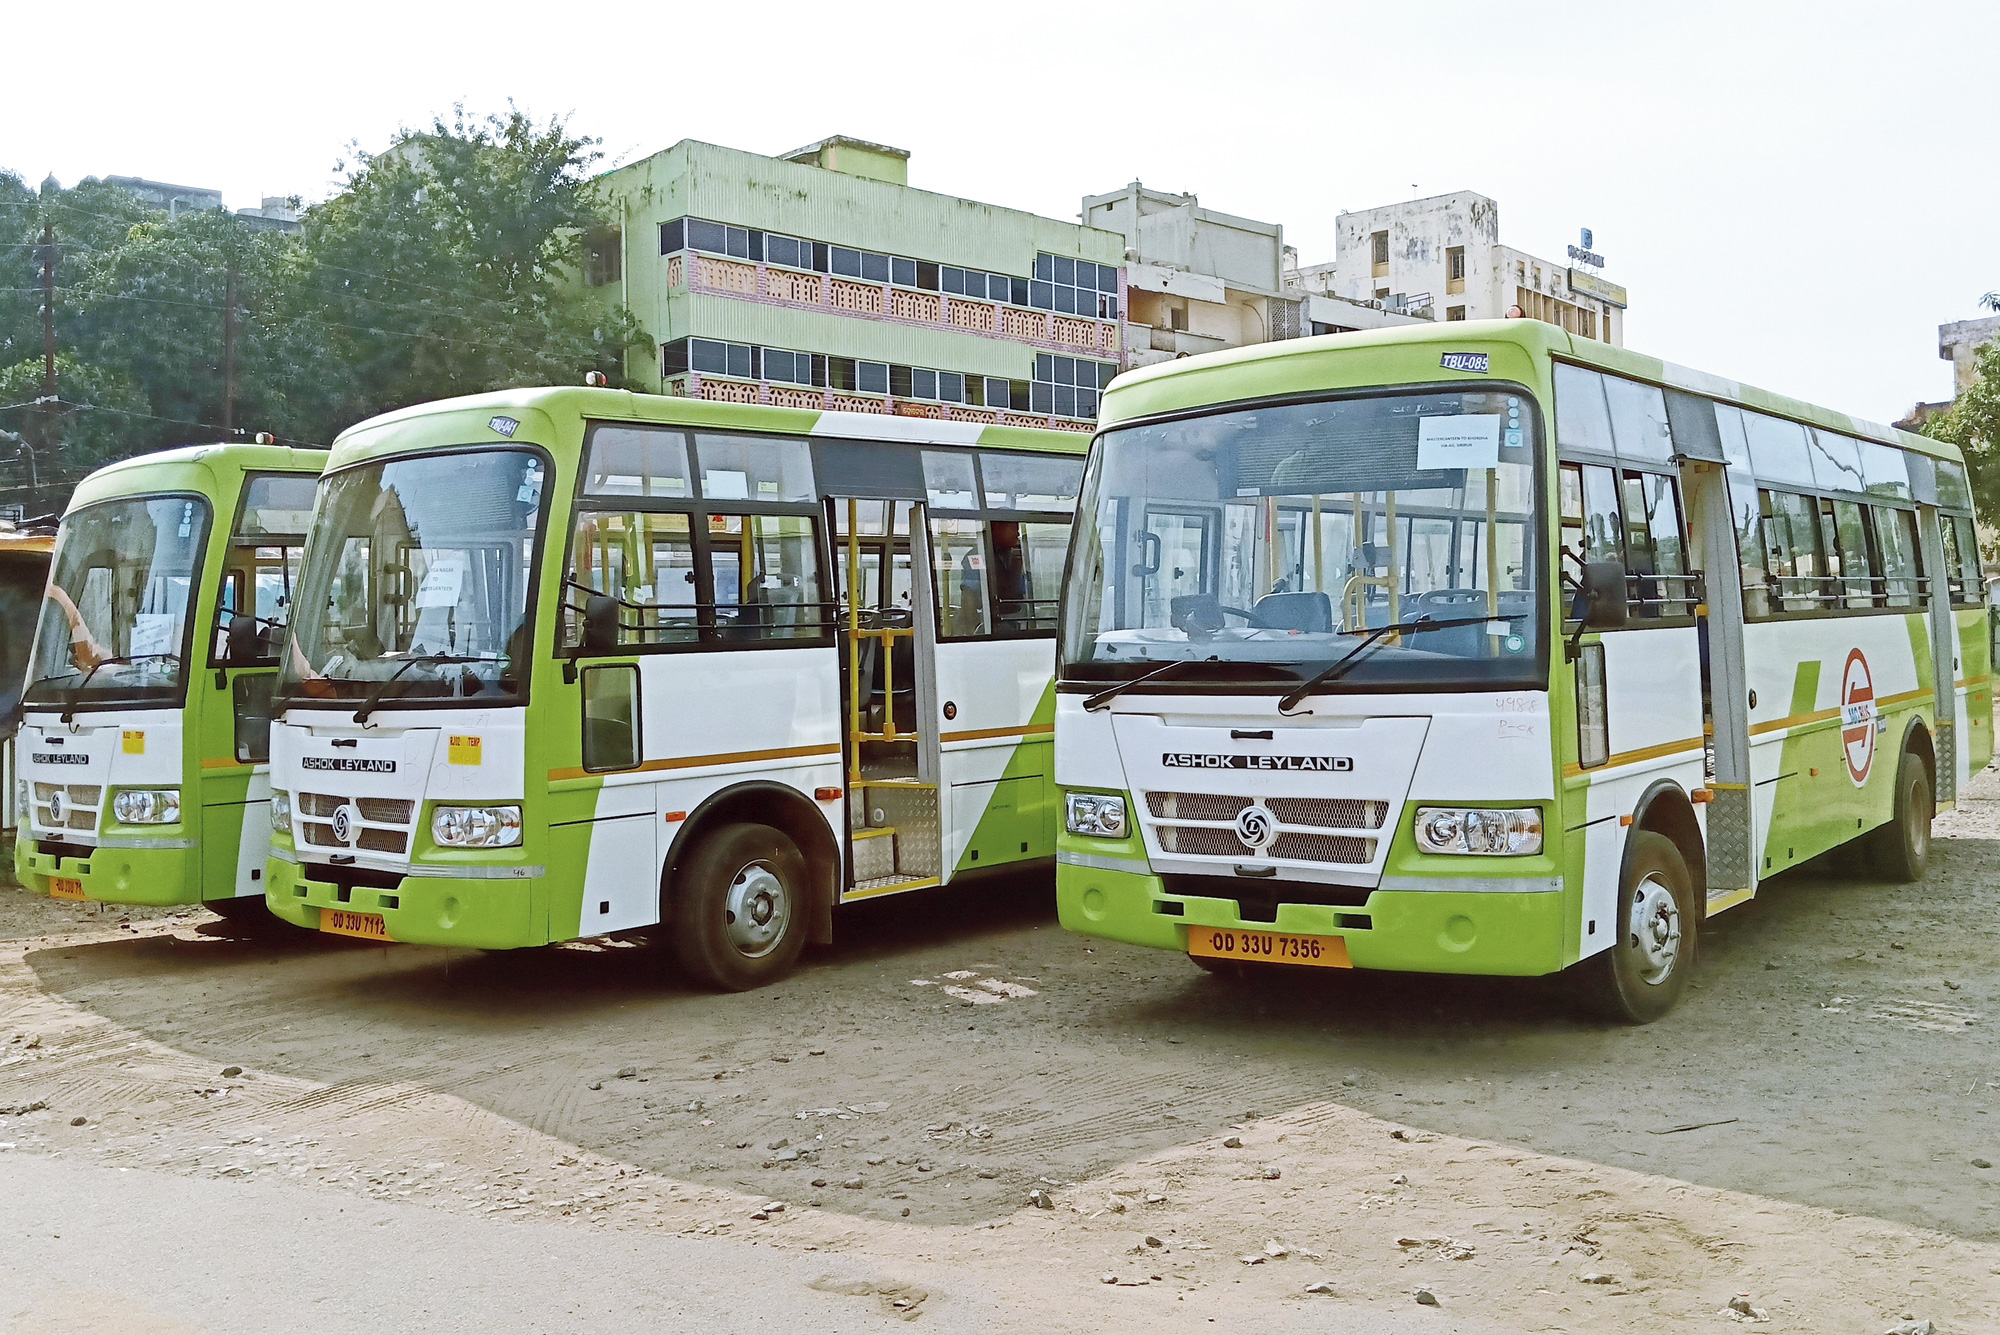 Ready for ride: New buses at Master Canteen bus terminal in Bhubaneswar on Saturday.